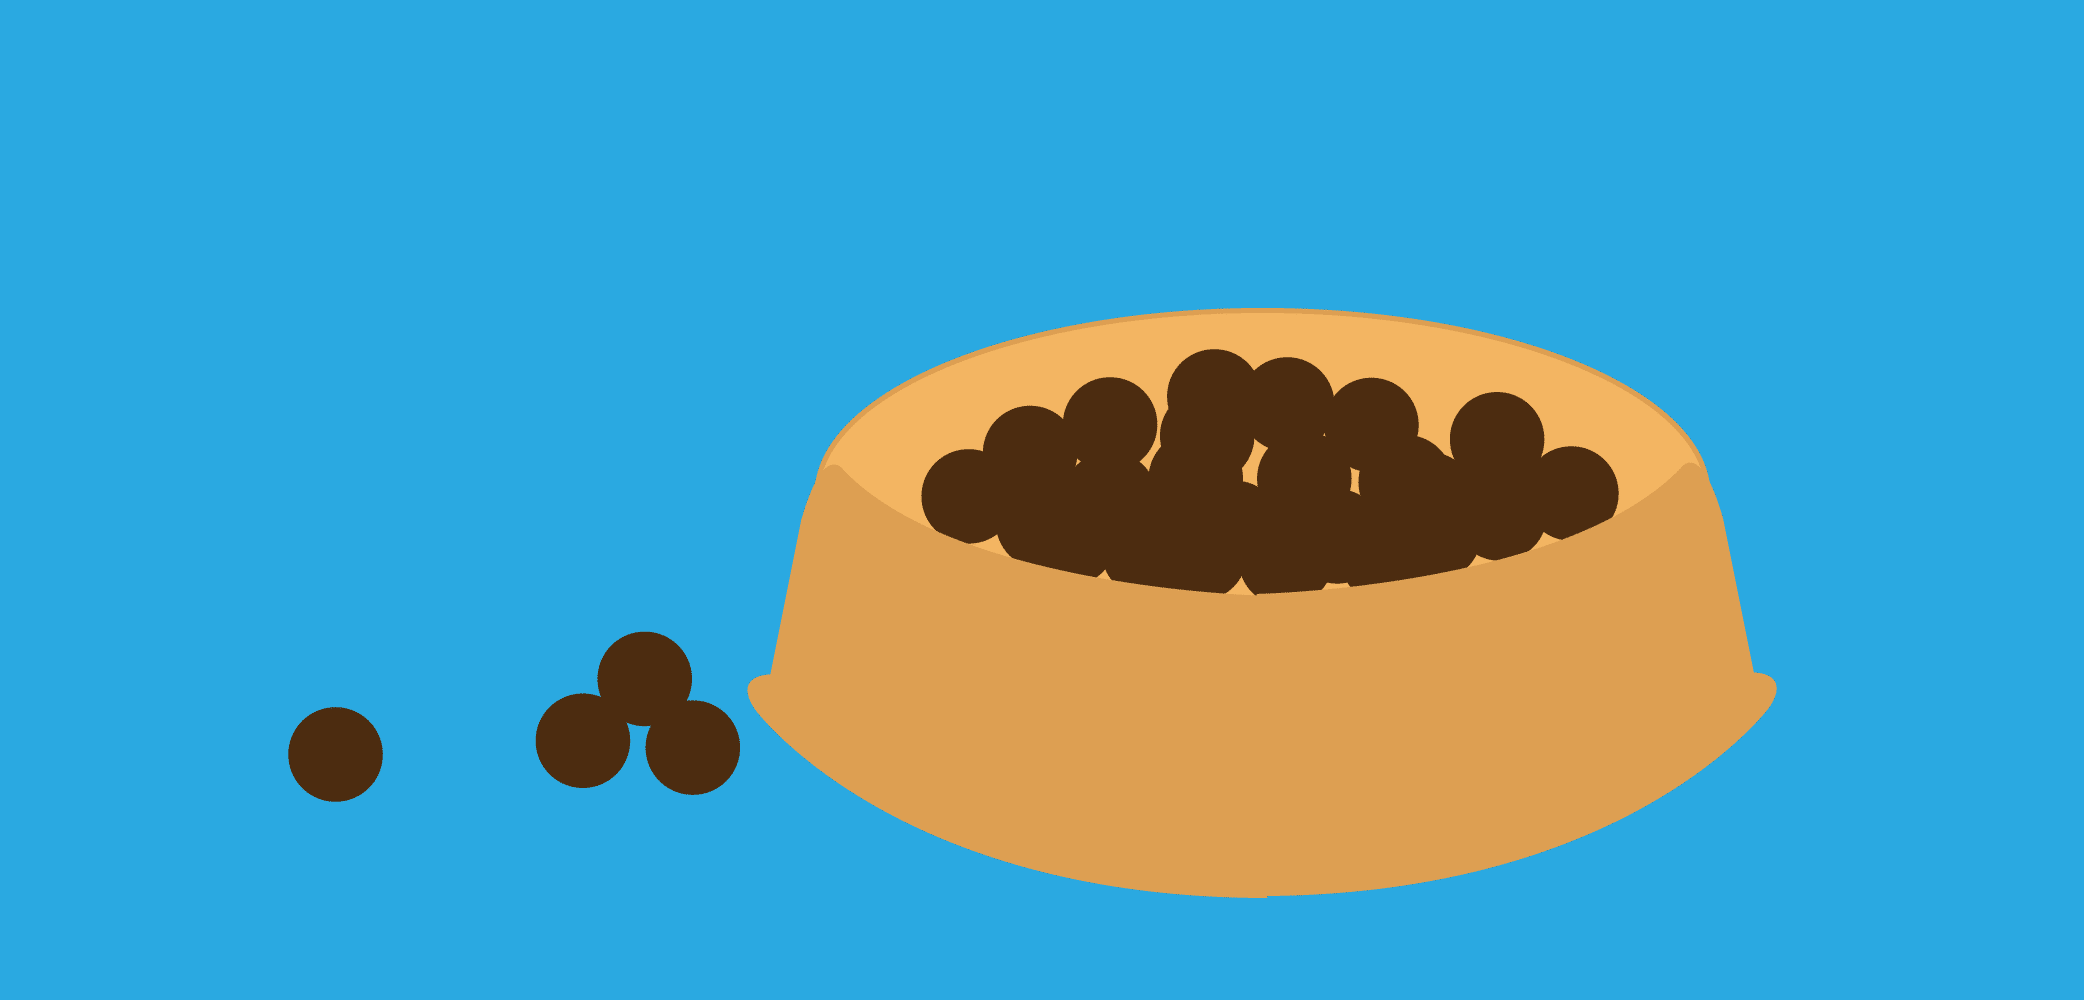 Illustration showing a bowl of pet food.